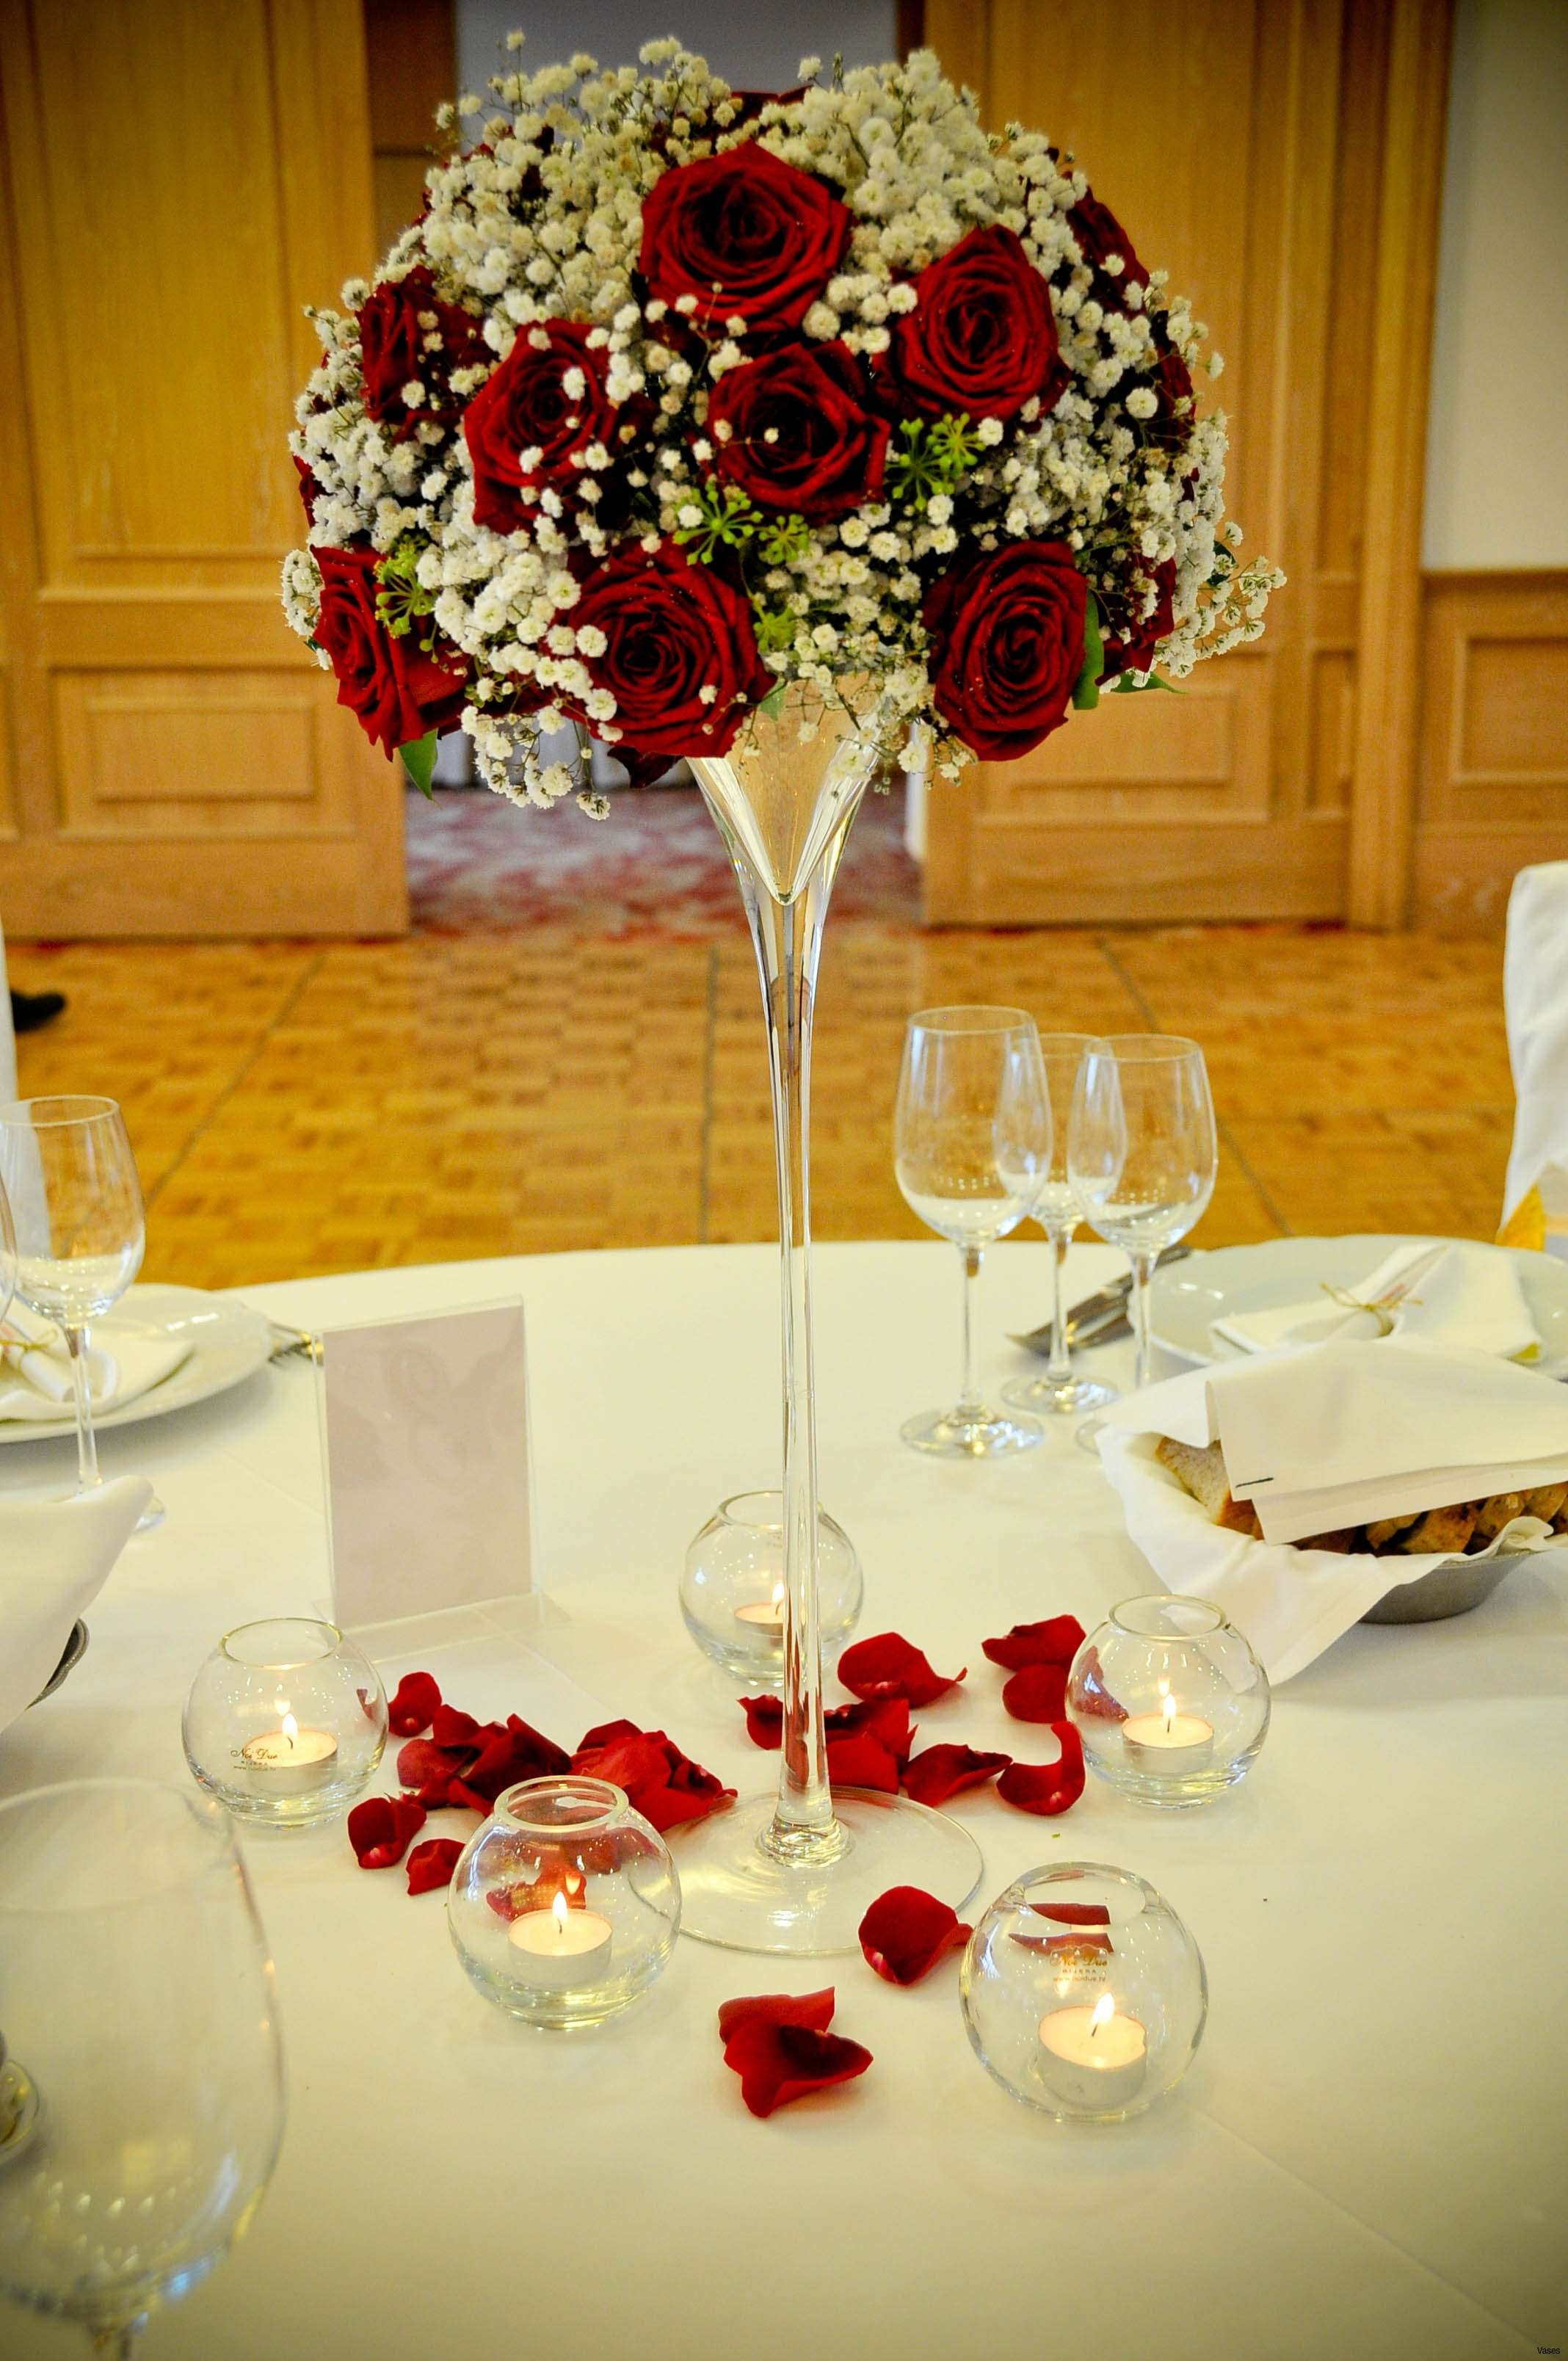 red vases and bowls of 25 luxury flower arrangements glass bowls flower decoration ideas with regard to flower arrangements glass bowls elegant 44 collection flower decoration ideas pic